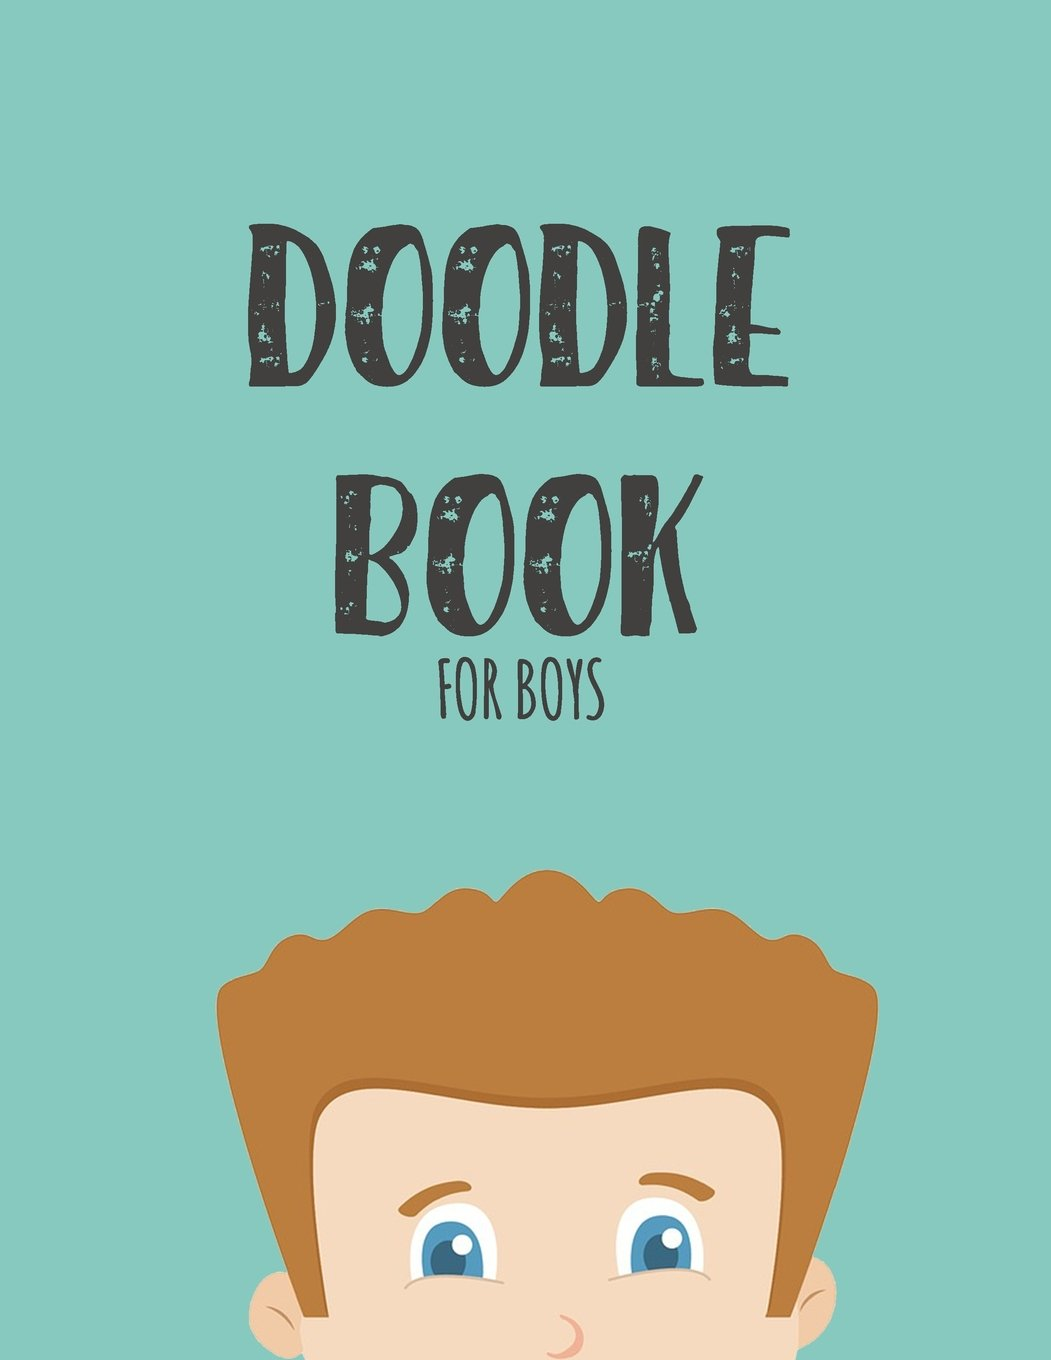 doodle-book-for-boys-8-5-x-11-120-unlined-blank-pages-for-unguided-doodling-drawing-sketching-writing